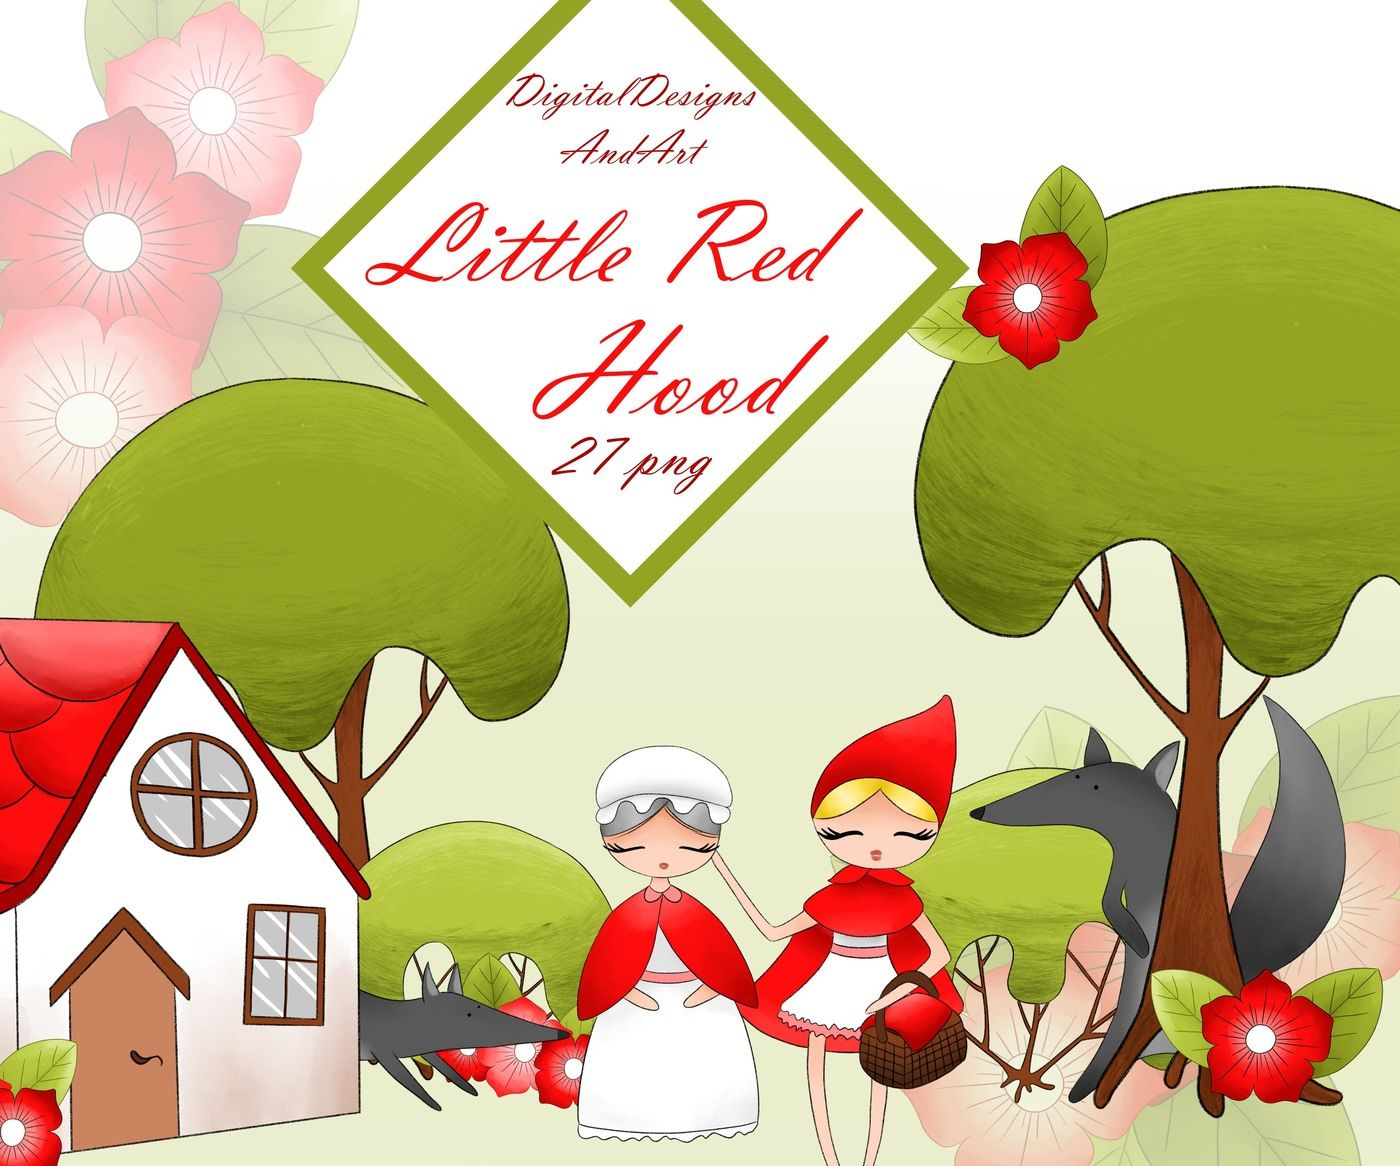 Little Red Riding Hood Clipart By Digitaldesignsandart